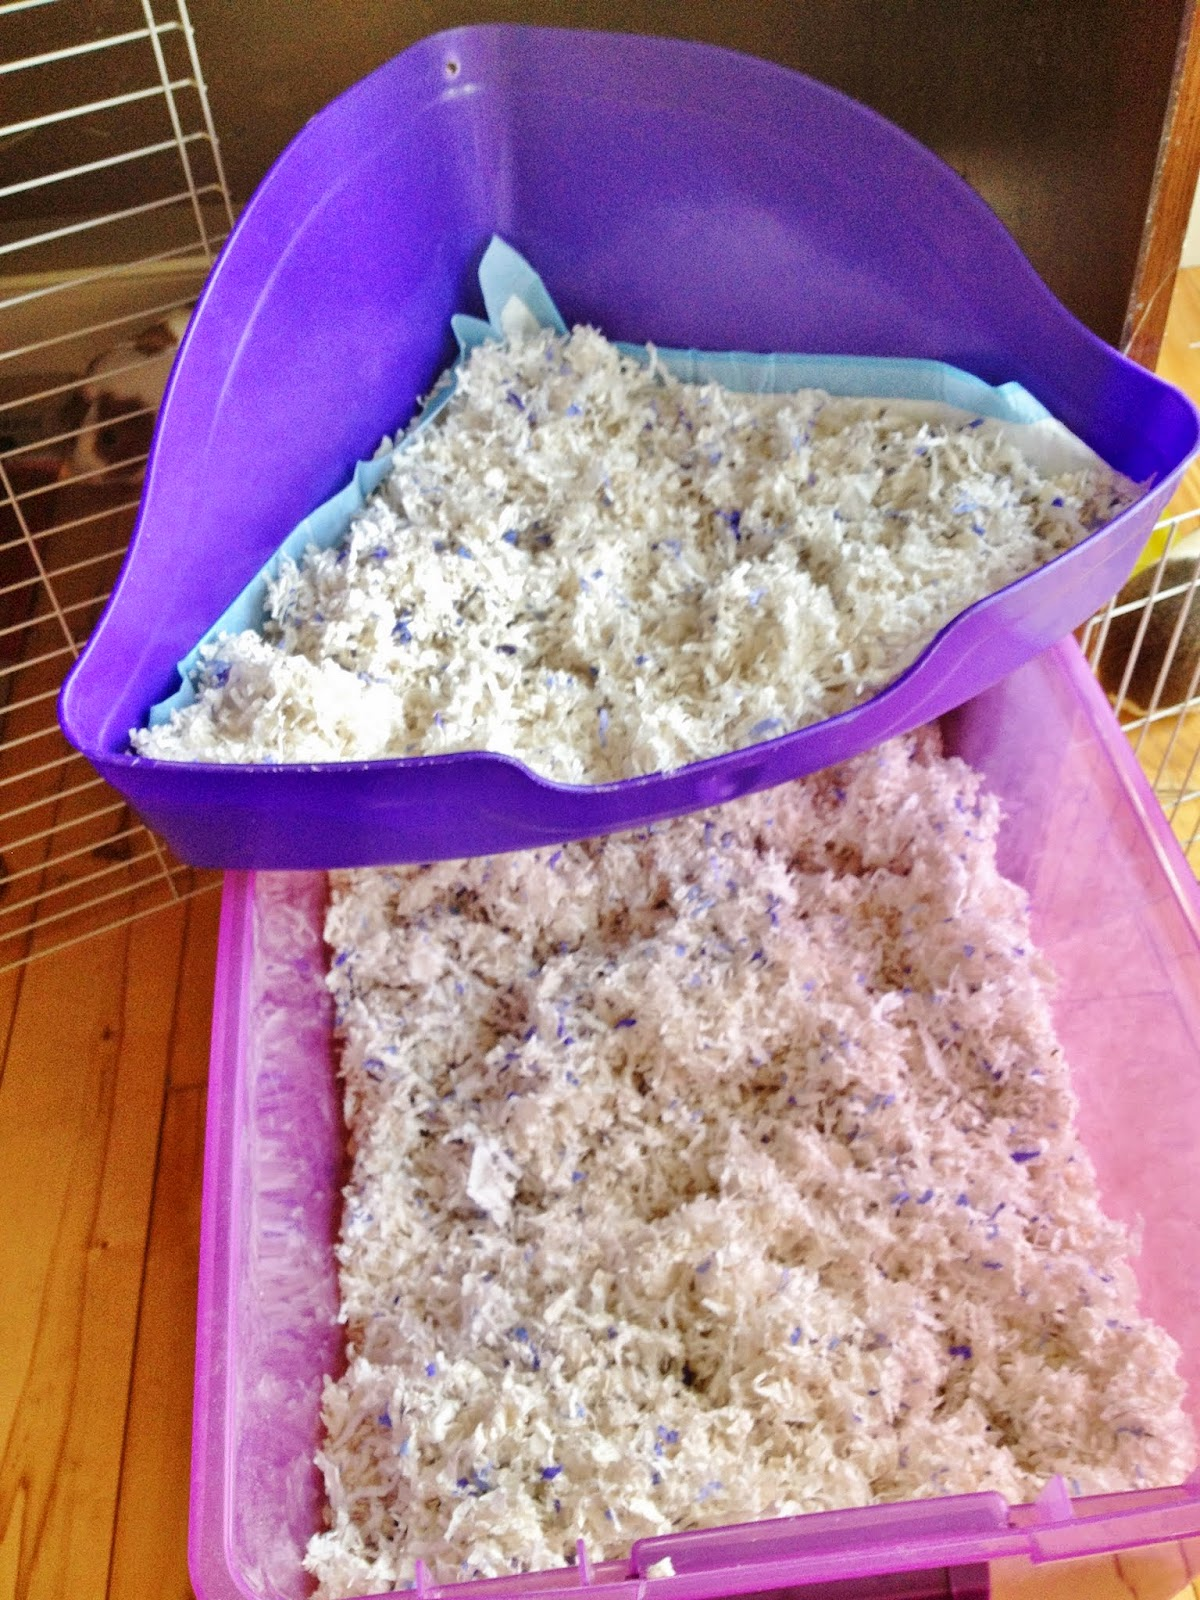 Fill corner potty with absorbent litter material. This is a mix of Kaytee Clean & Cozy Small Animal bedding in Lavender and Original.